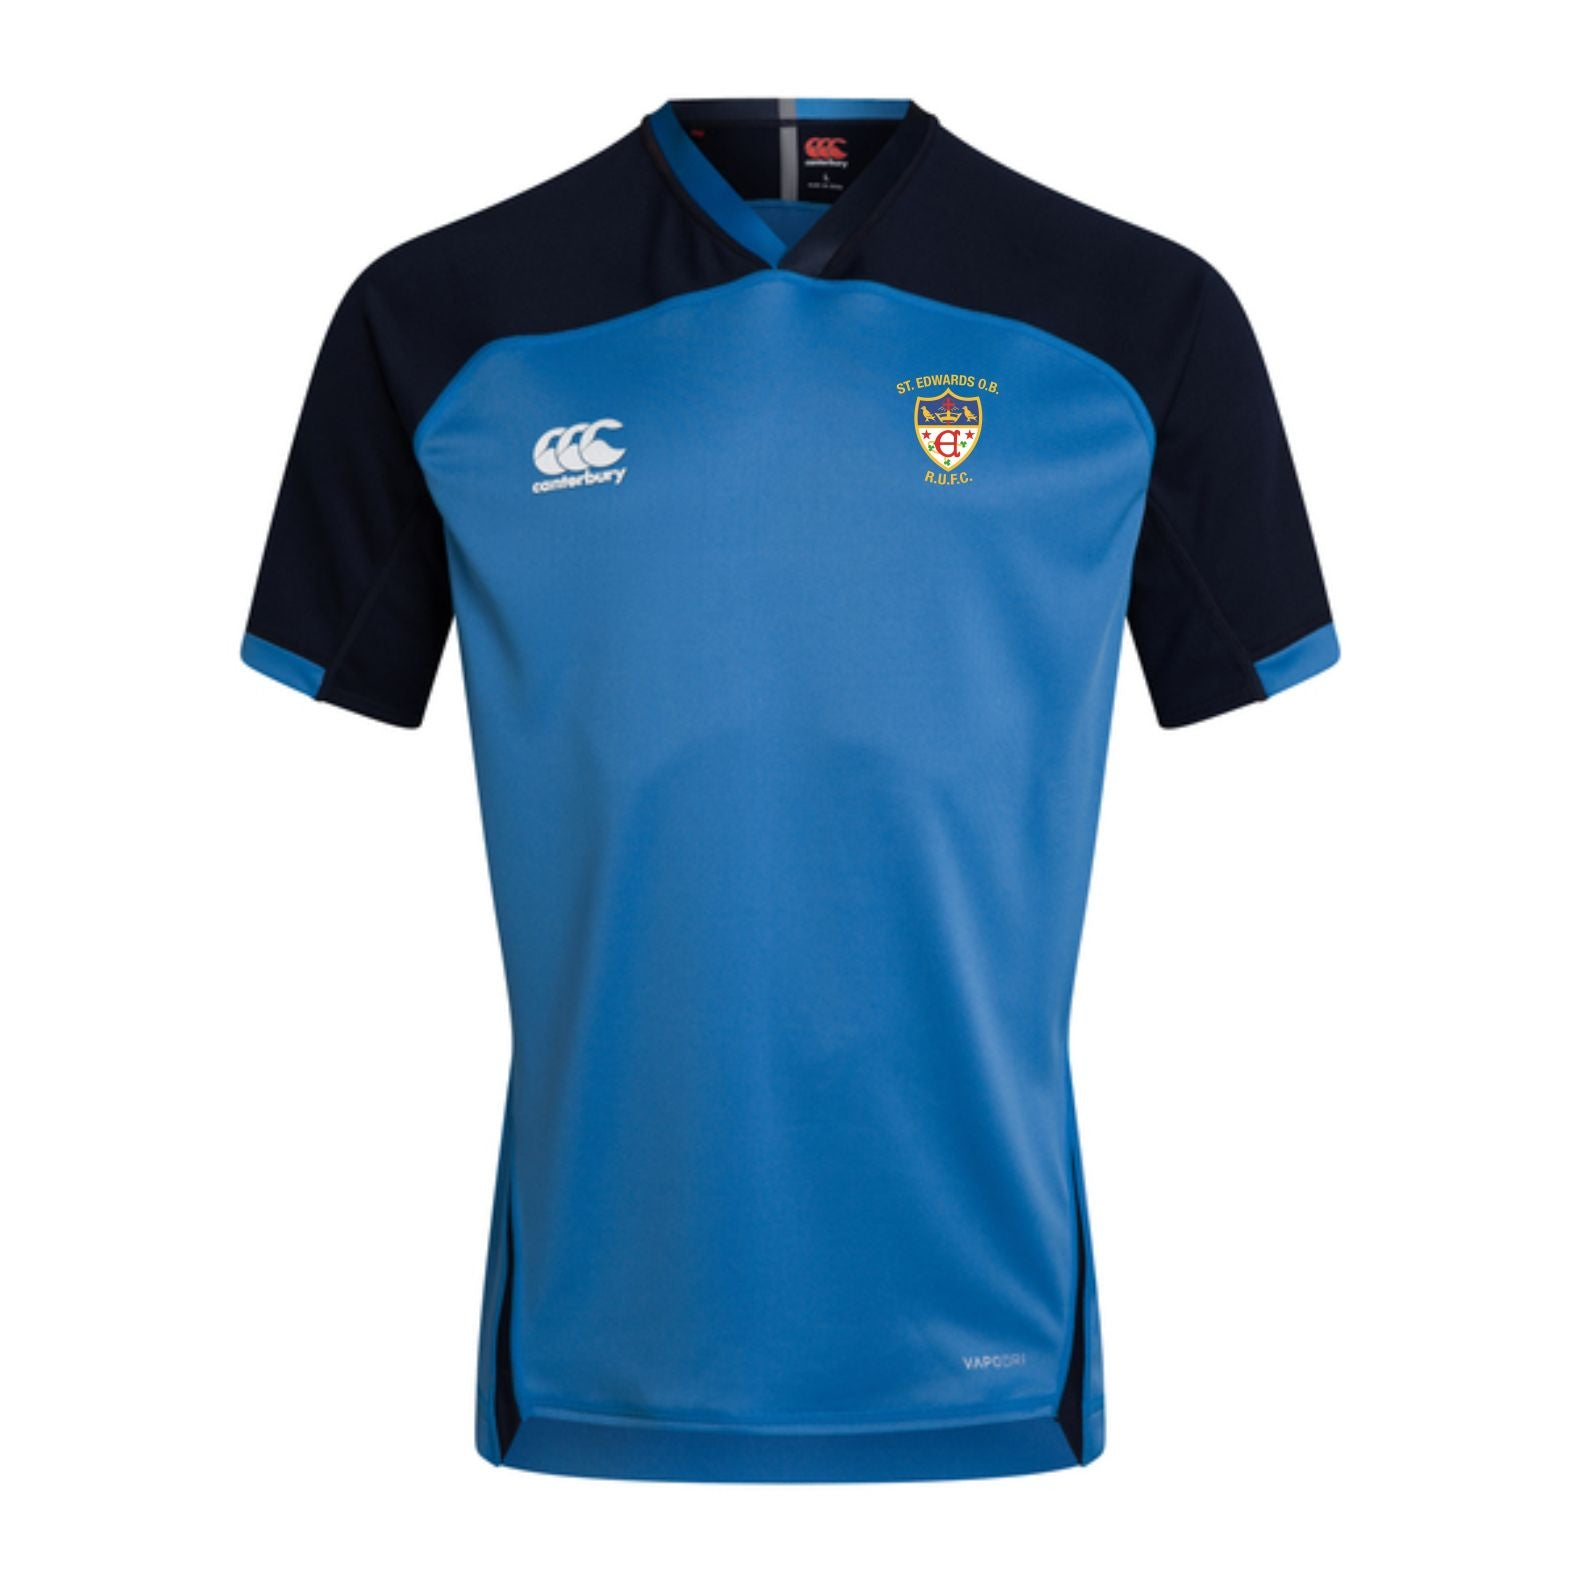 St Edward's Old Boys R.U.F.C CCC Evader Training Shirt